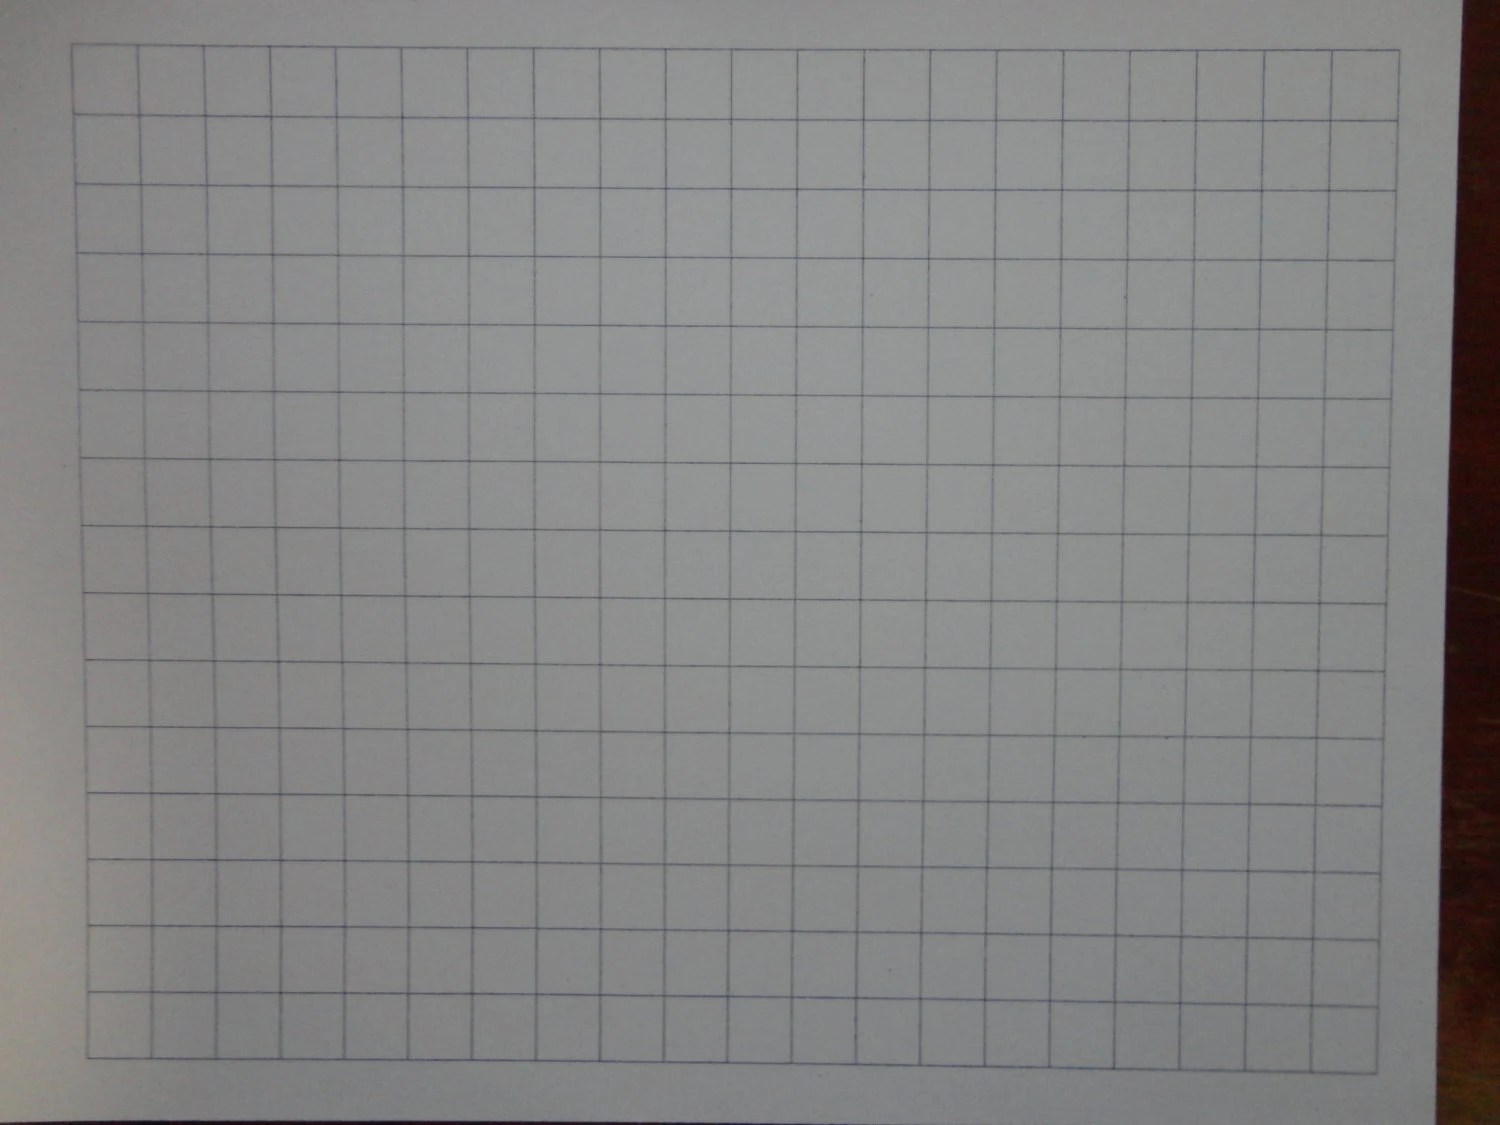 Large square grid graph paper from TheGiddyGrid on Etsy Studio